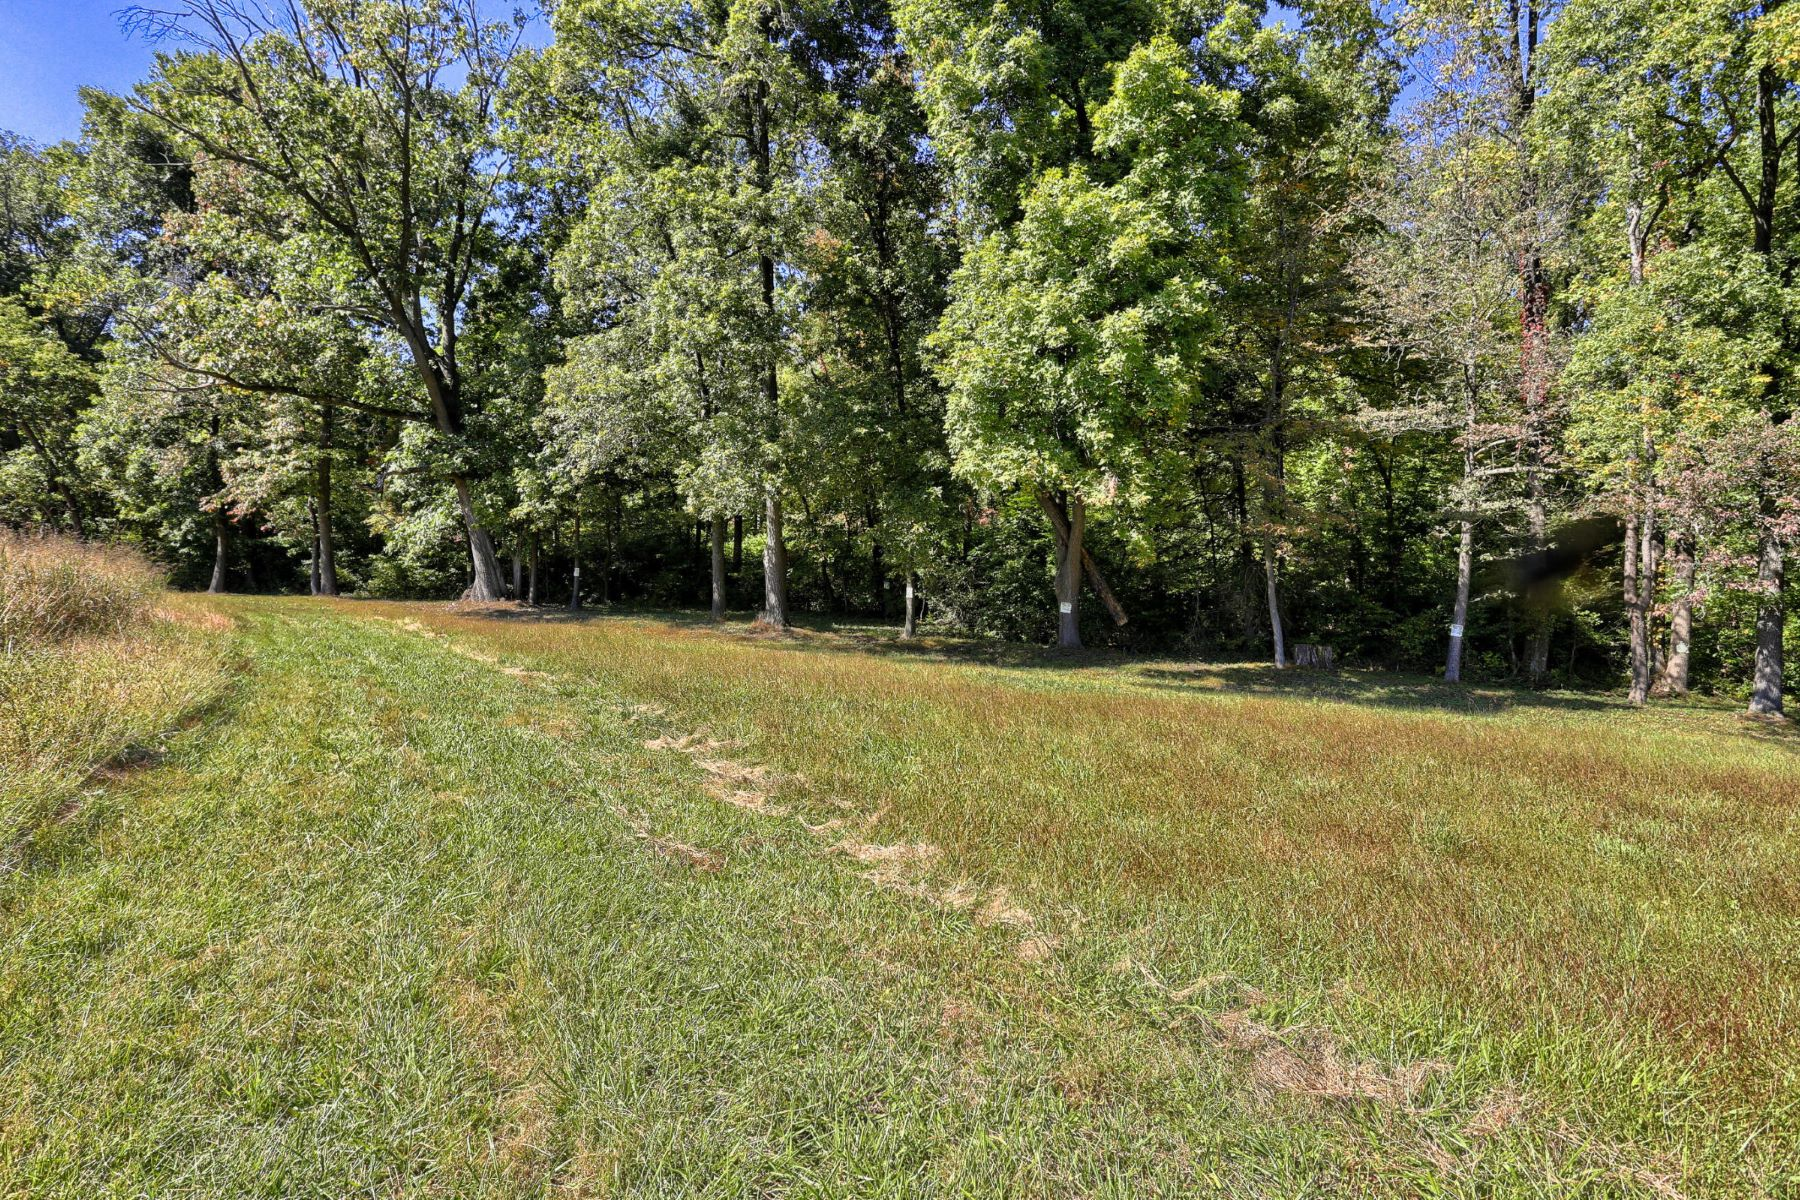 Additional photo for property listing at Hilldale Estates 8 Joann Lane lot 4 Pequea, Pennsylvania 17565 United States